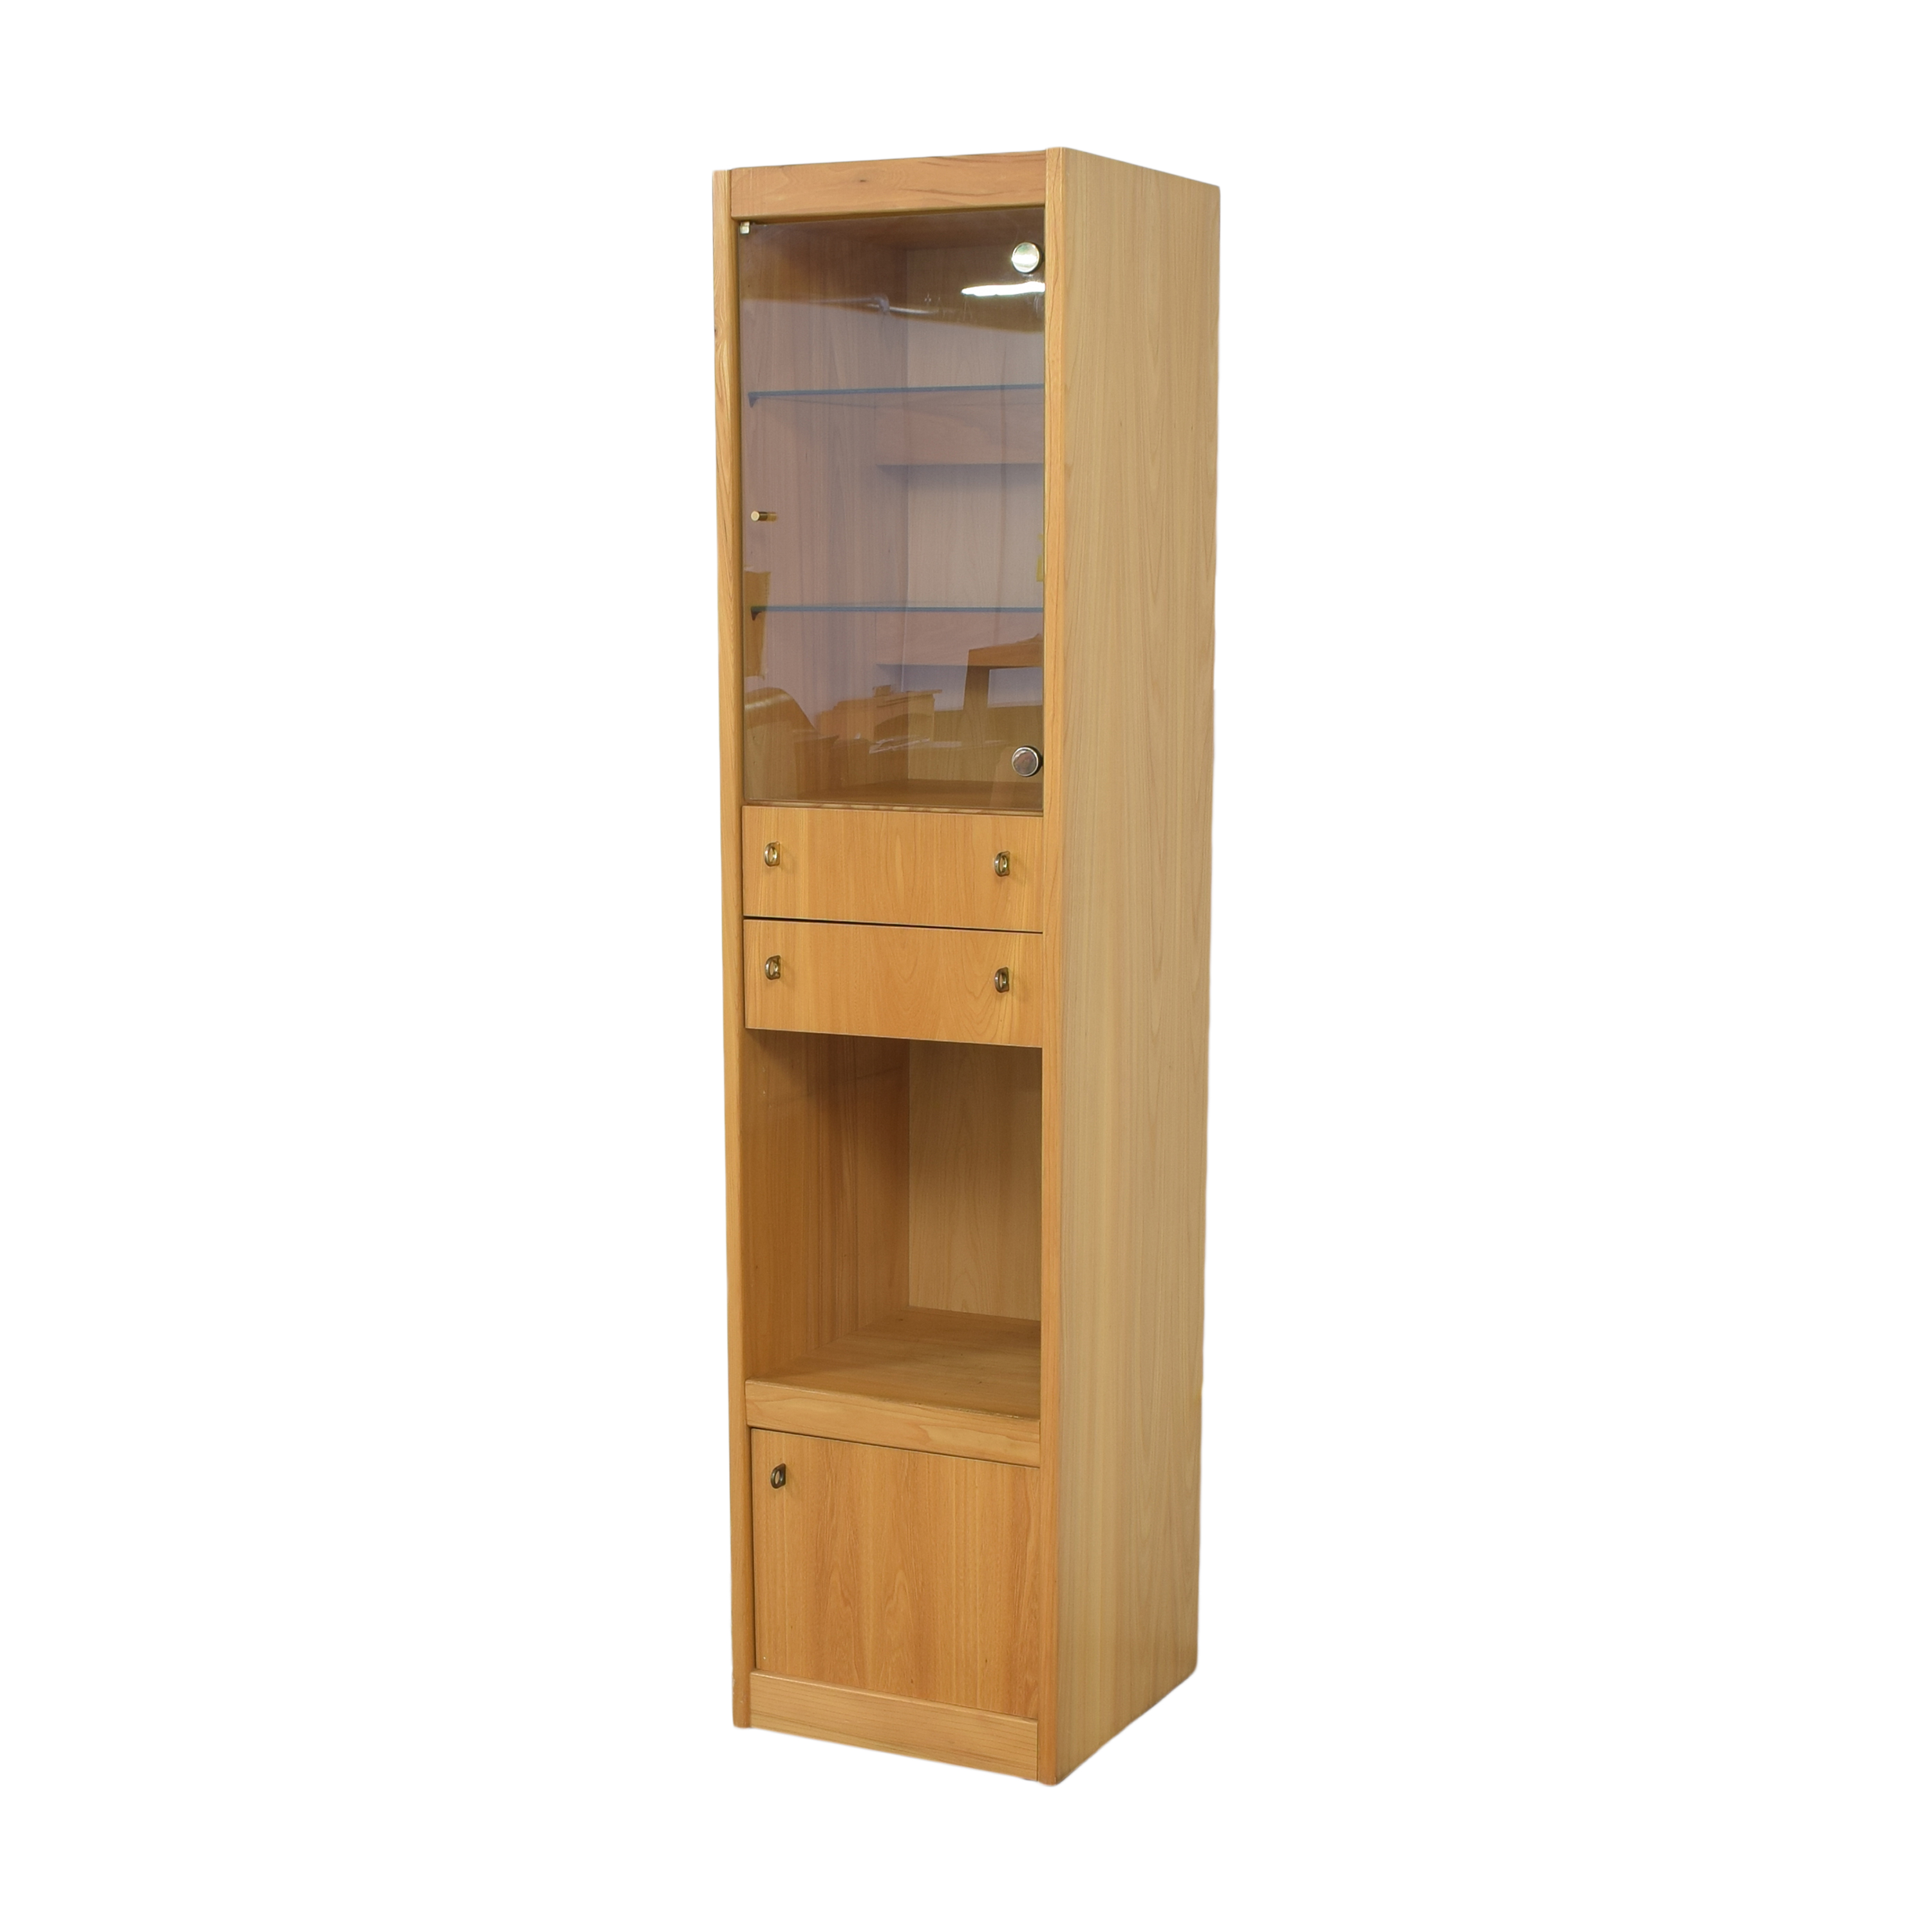 Macy's Macy's Tall Lighted Cabinet ct